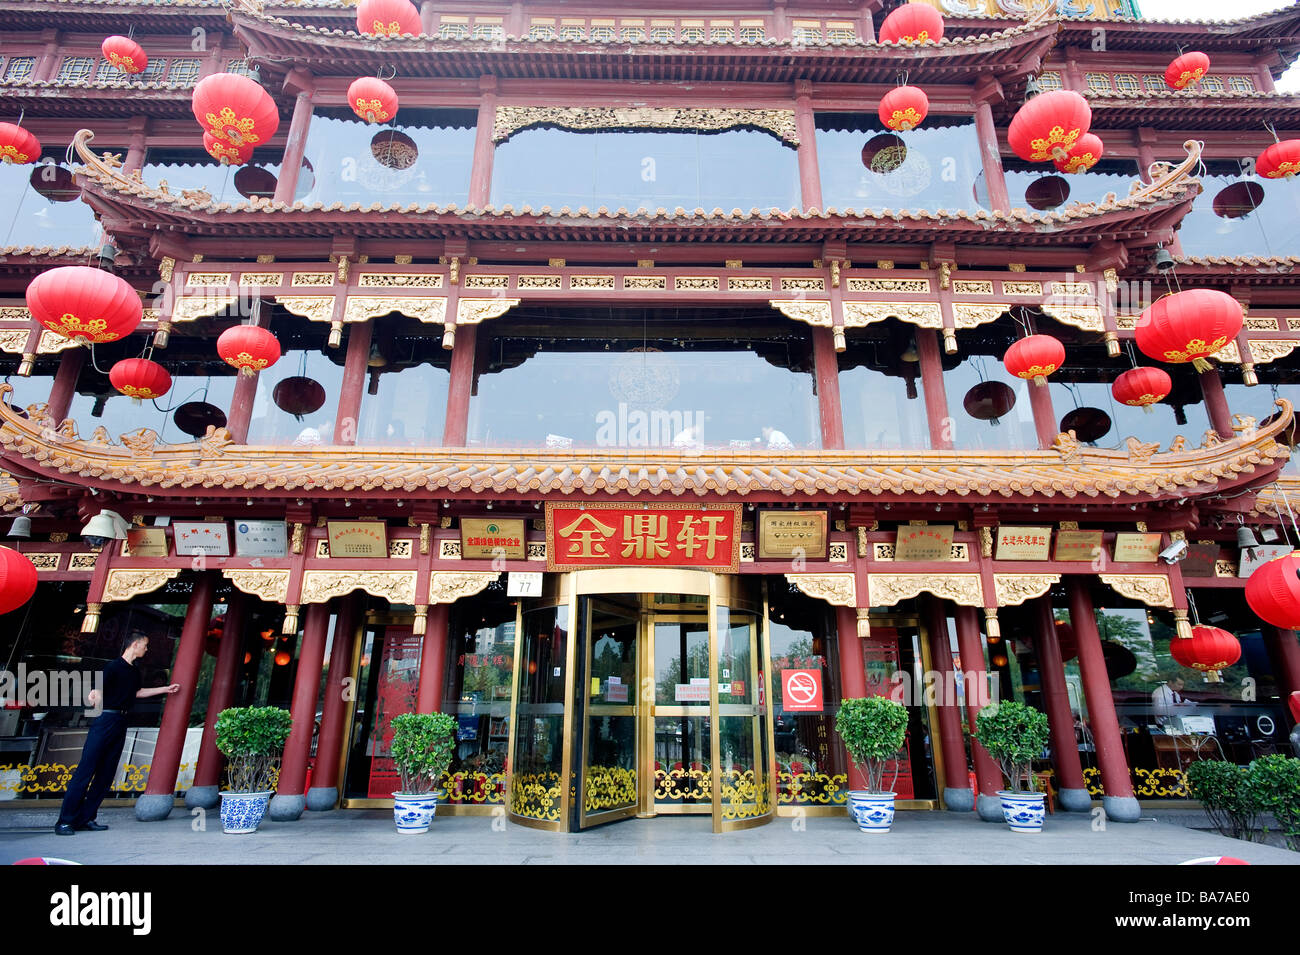 China, Beijing, the famous dim sum restaurant Jin Ding Xuan is opened 24 hours - Stock Image